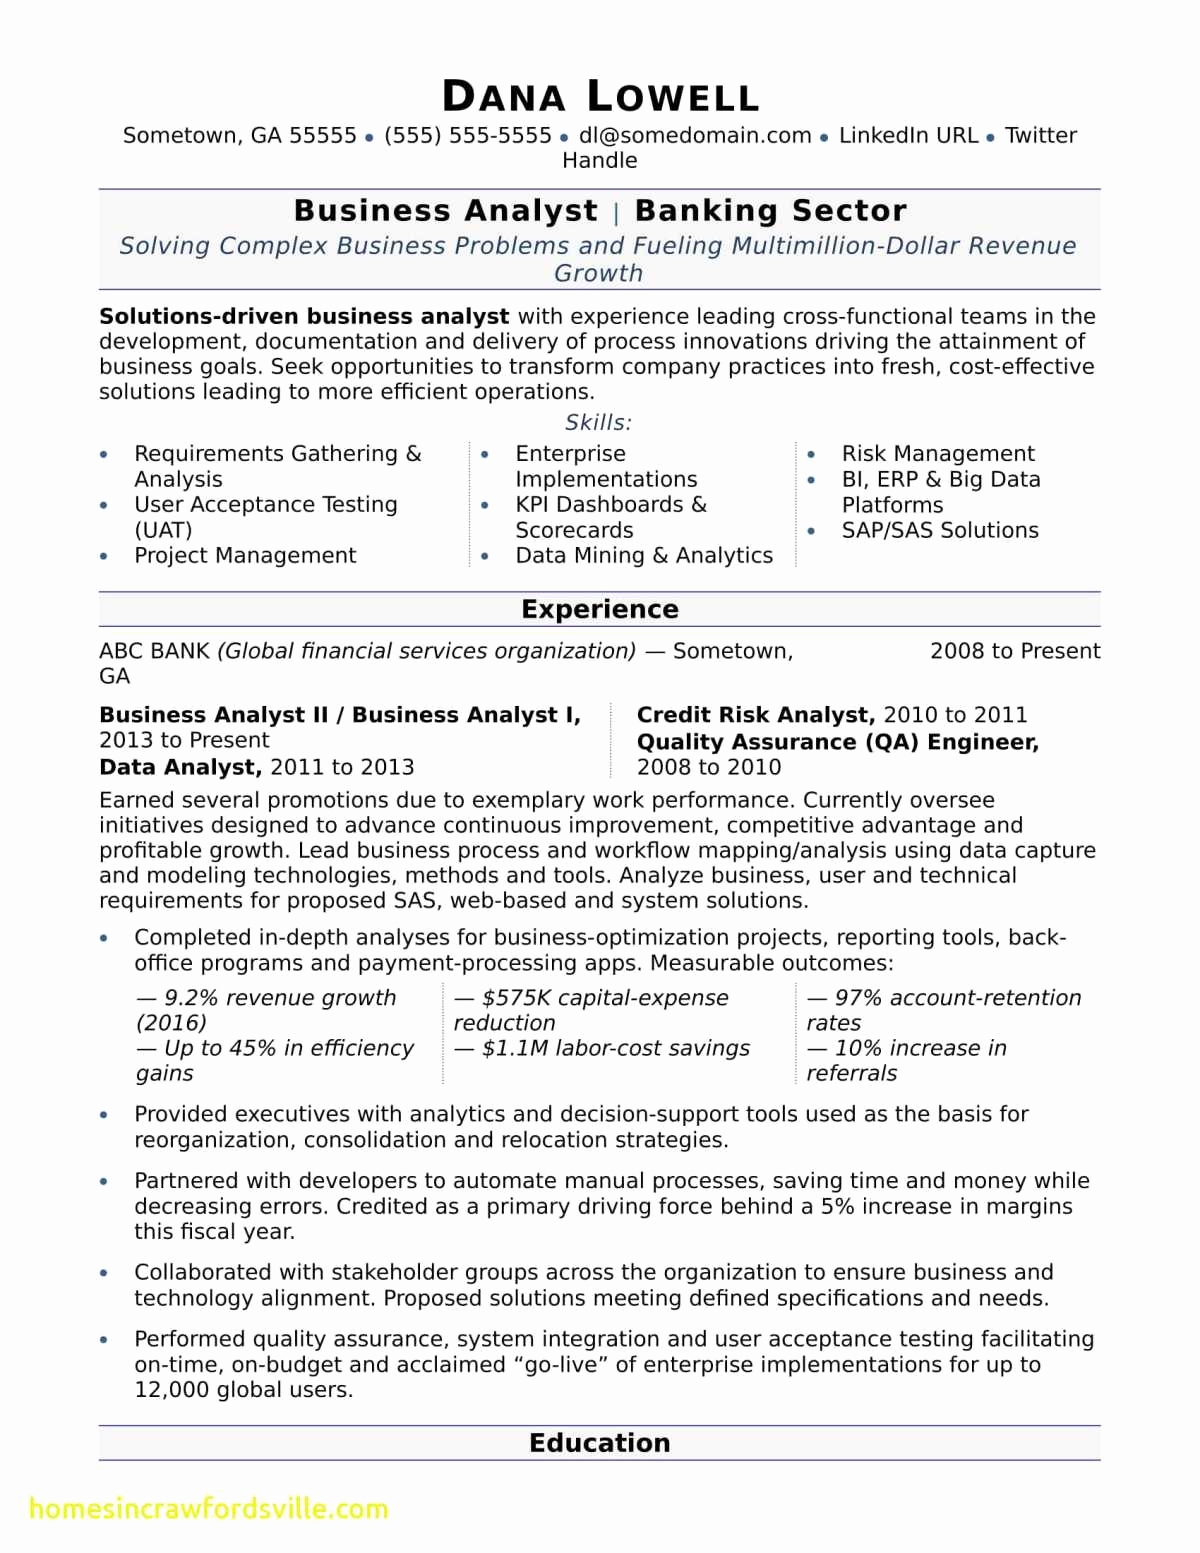 Wyotech Resume - Optimal Resume Mdc Optimal Resume Wyotech Picture Best solutions